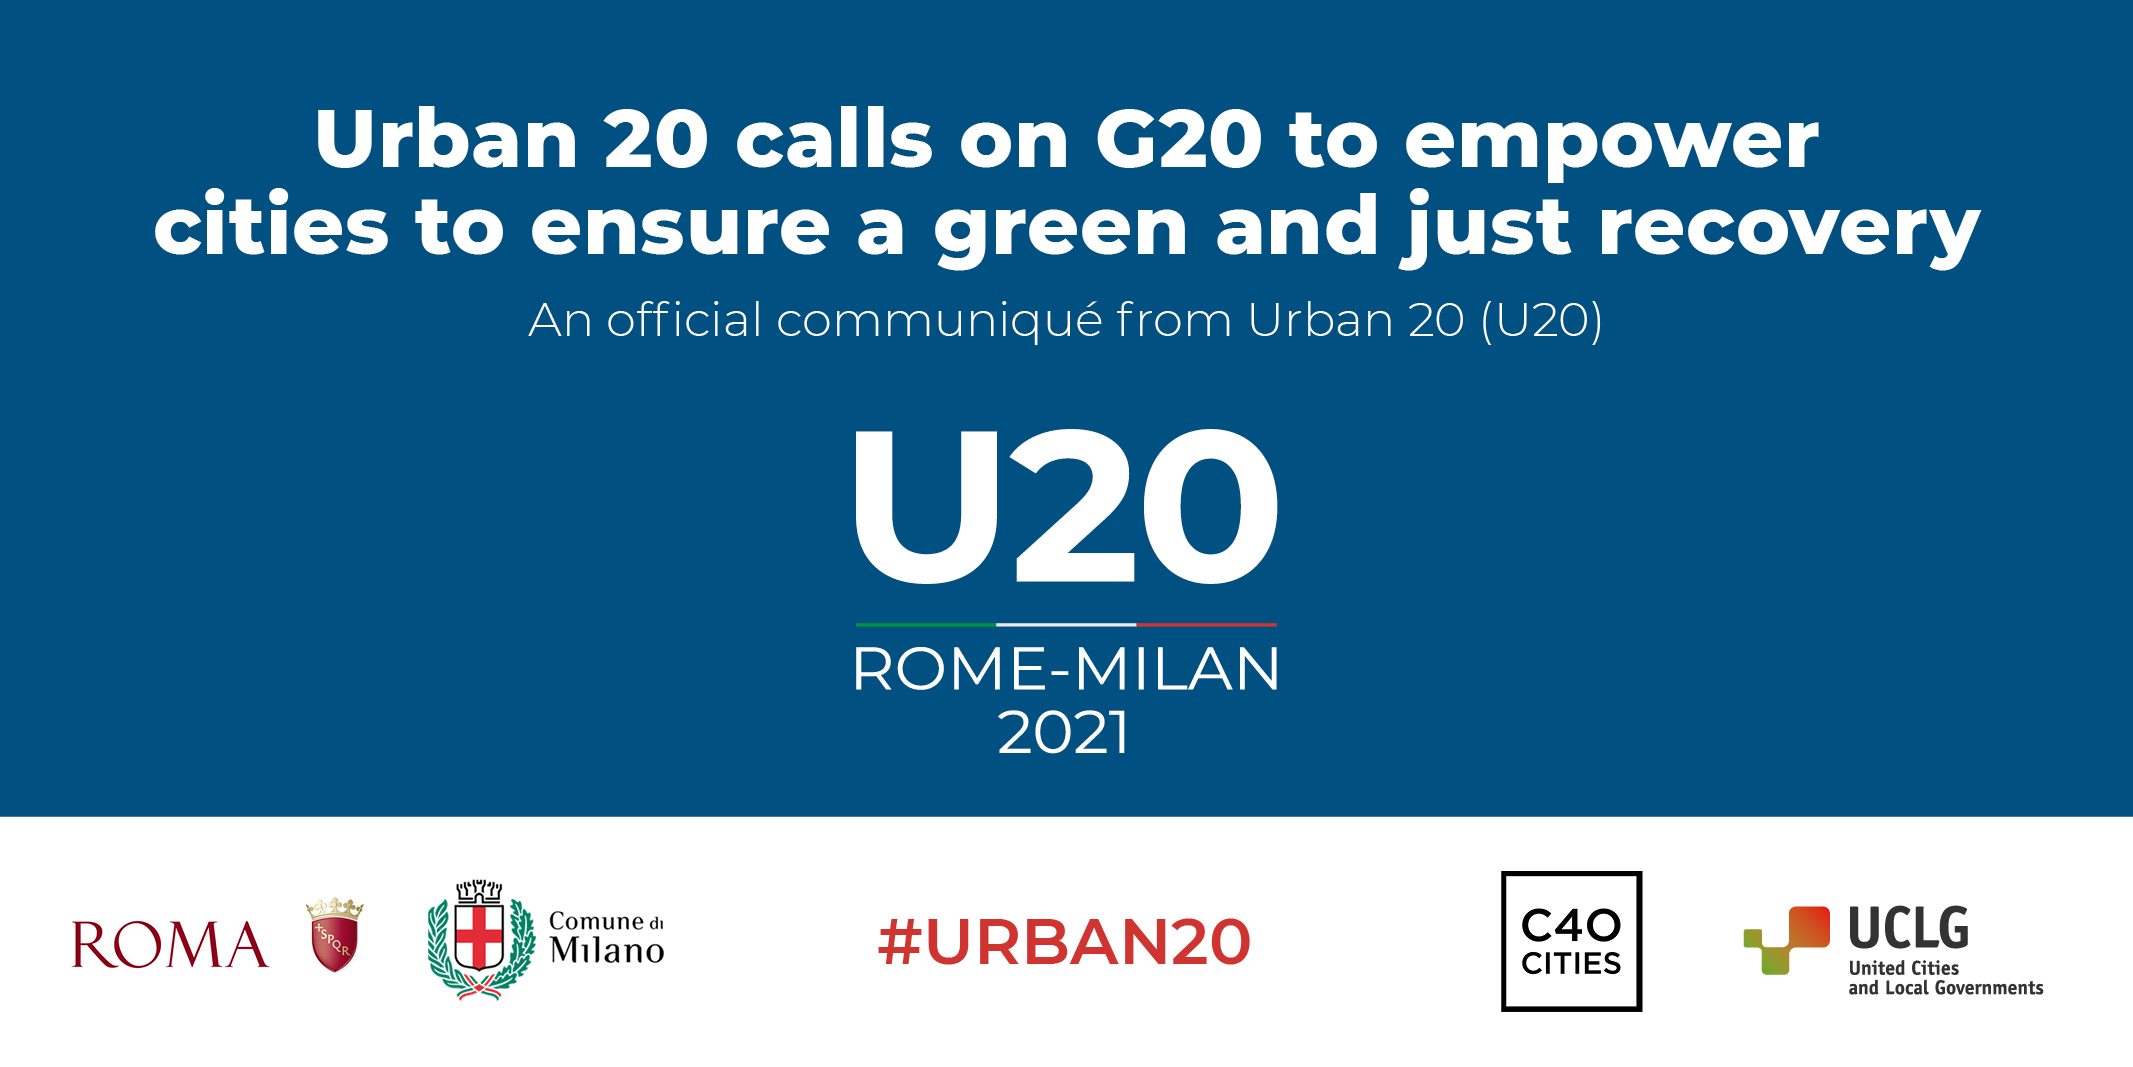 """U20 Rome-Milan poster with logos of Rome, Milan, C40 and UCLG with the #Urban20 and title """"Urban 20 calls on G20 to empower cities to ensure a green and just Recovery""""."""